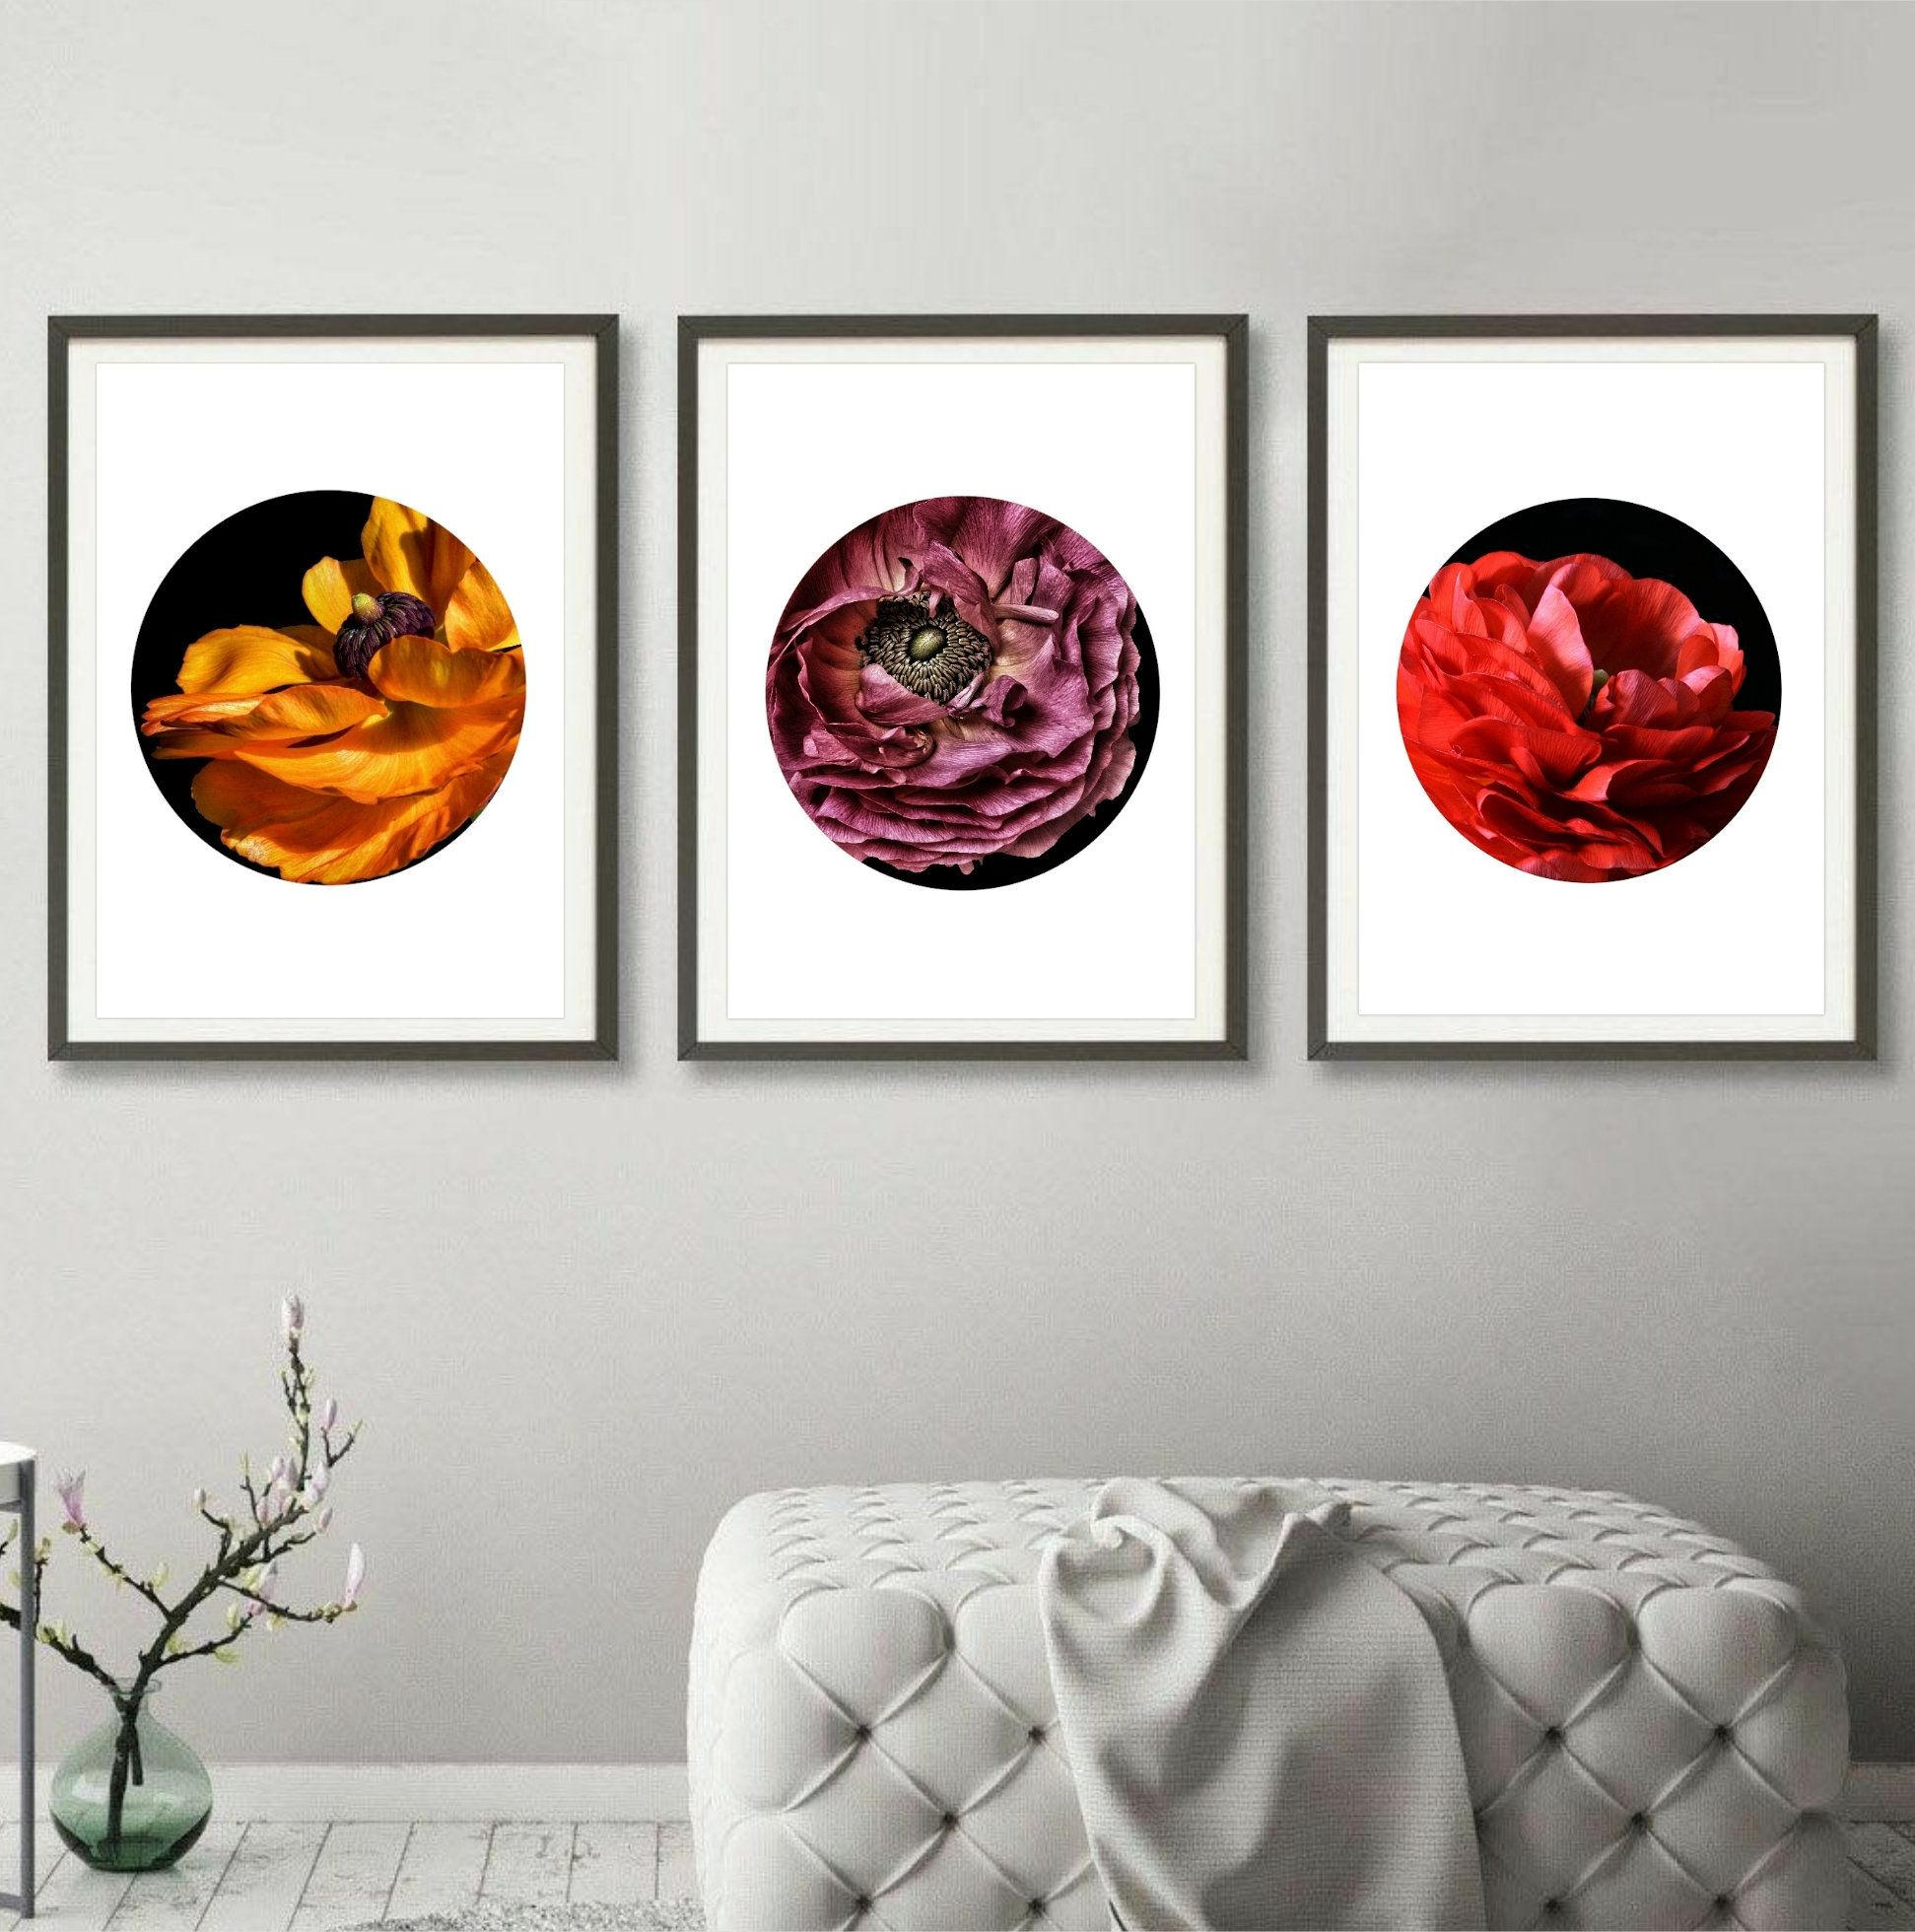 3 Piece Wall Art Set Of Three Ranunculus Flower Prints Photography Artwork In White Circle Modern Botanical Picture